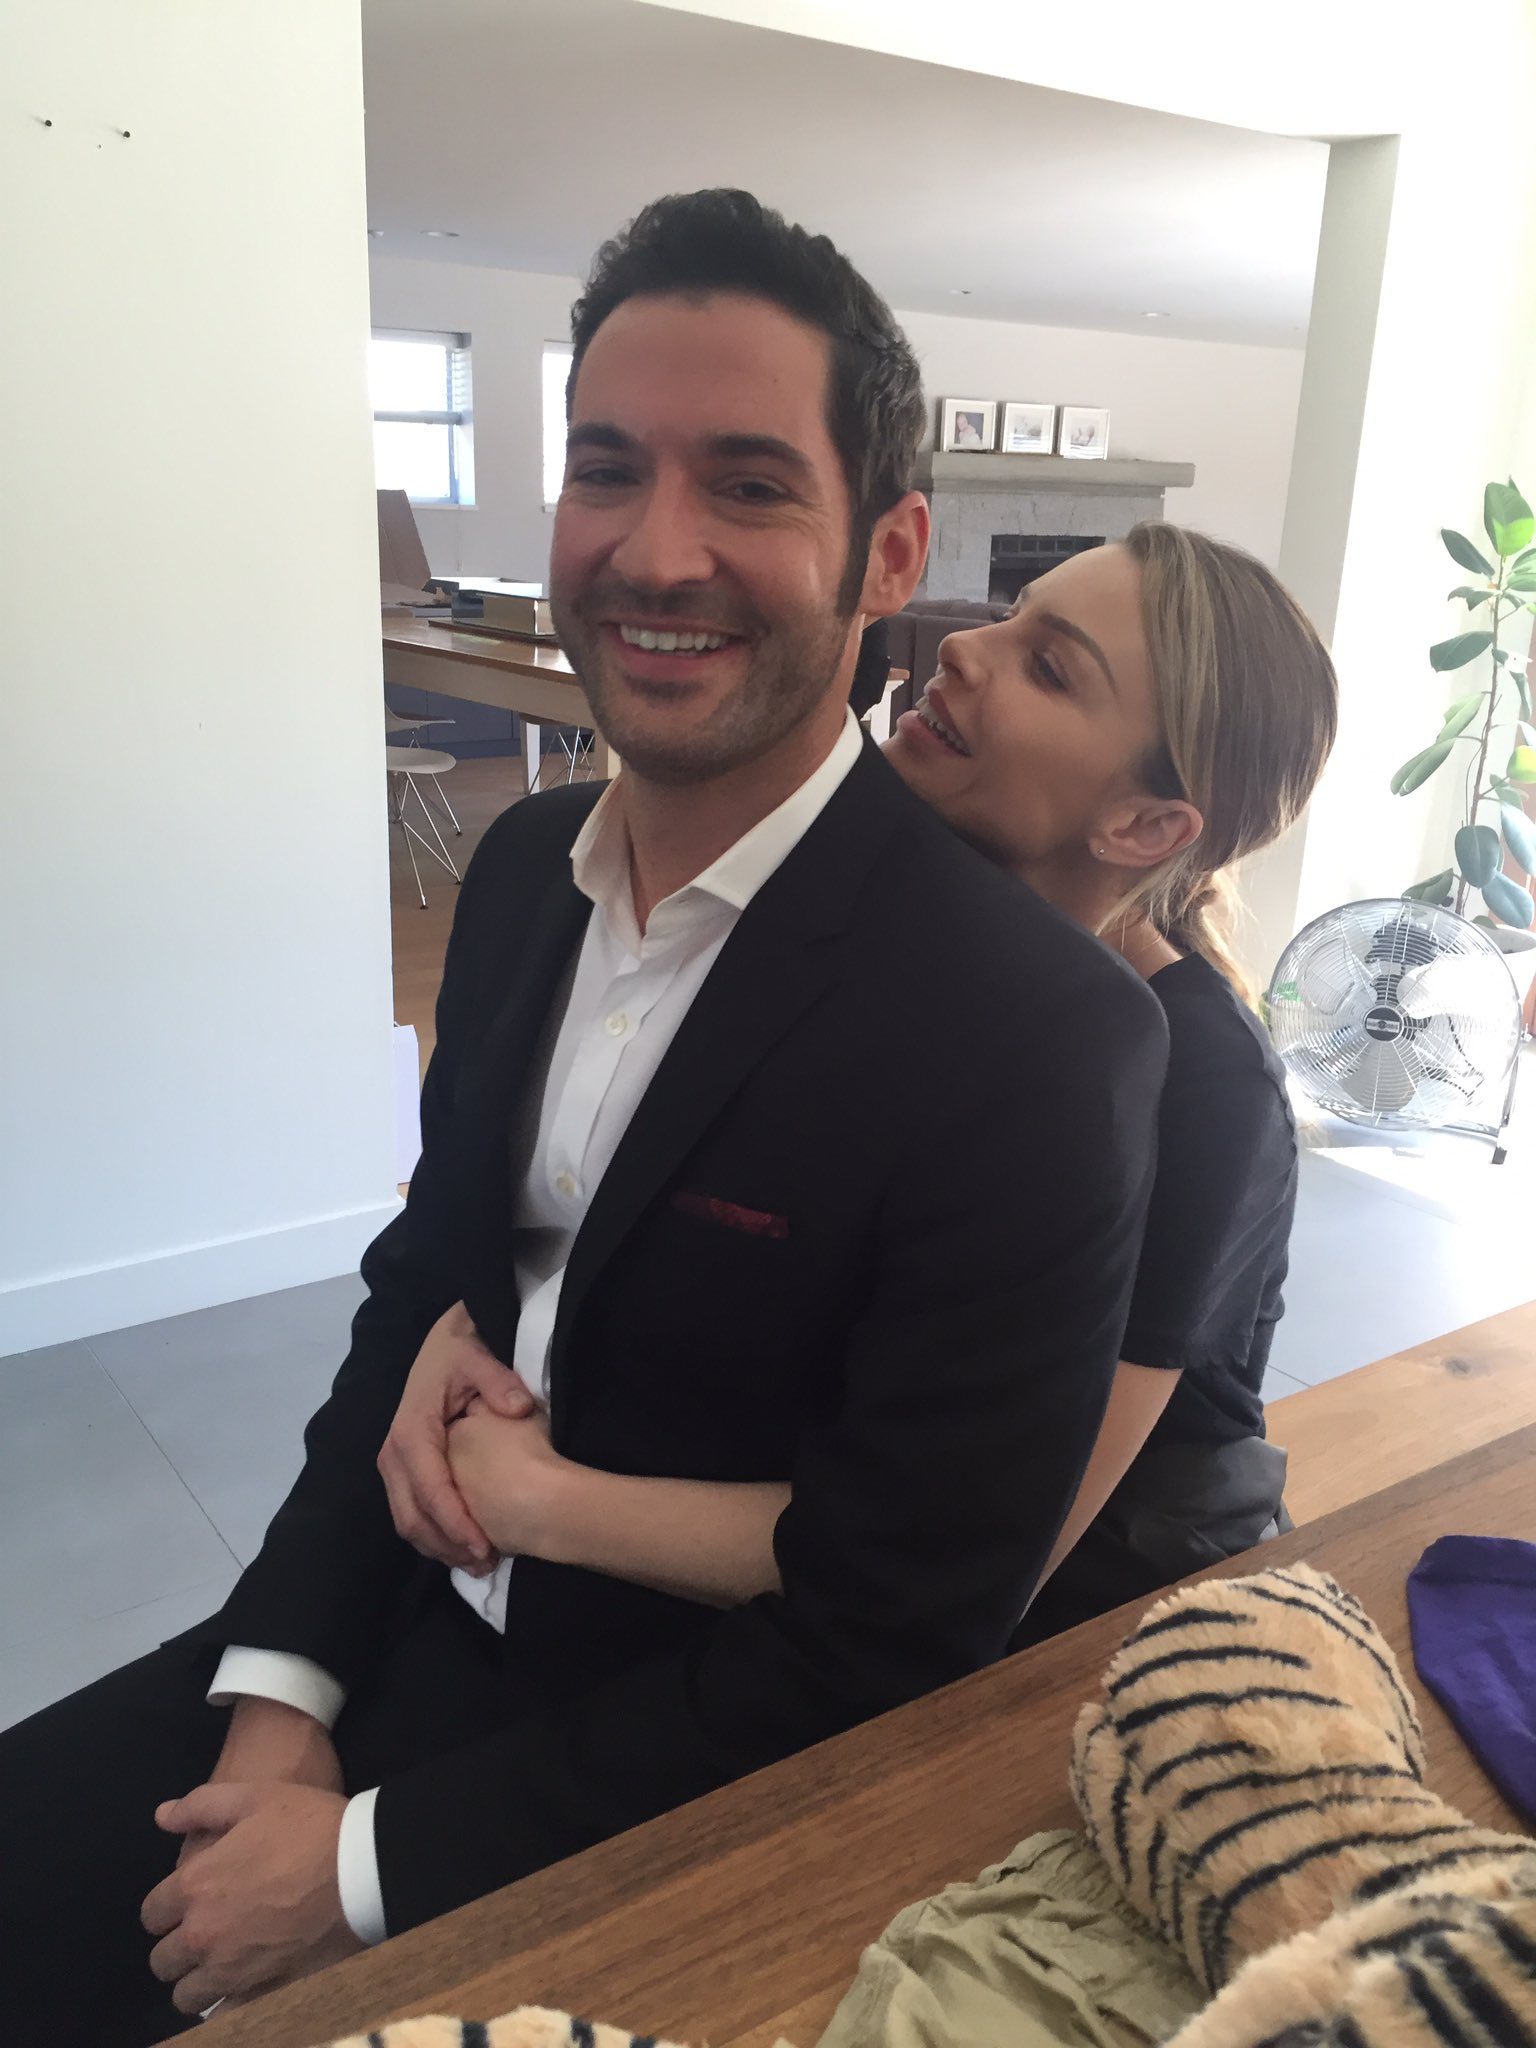 Tom Ellis & Lauren German | Lucifer morningstar, Lauren ...